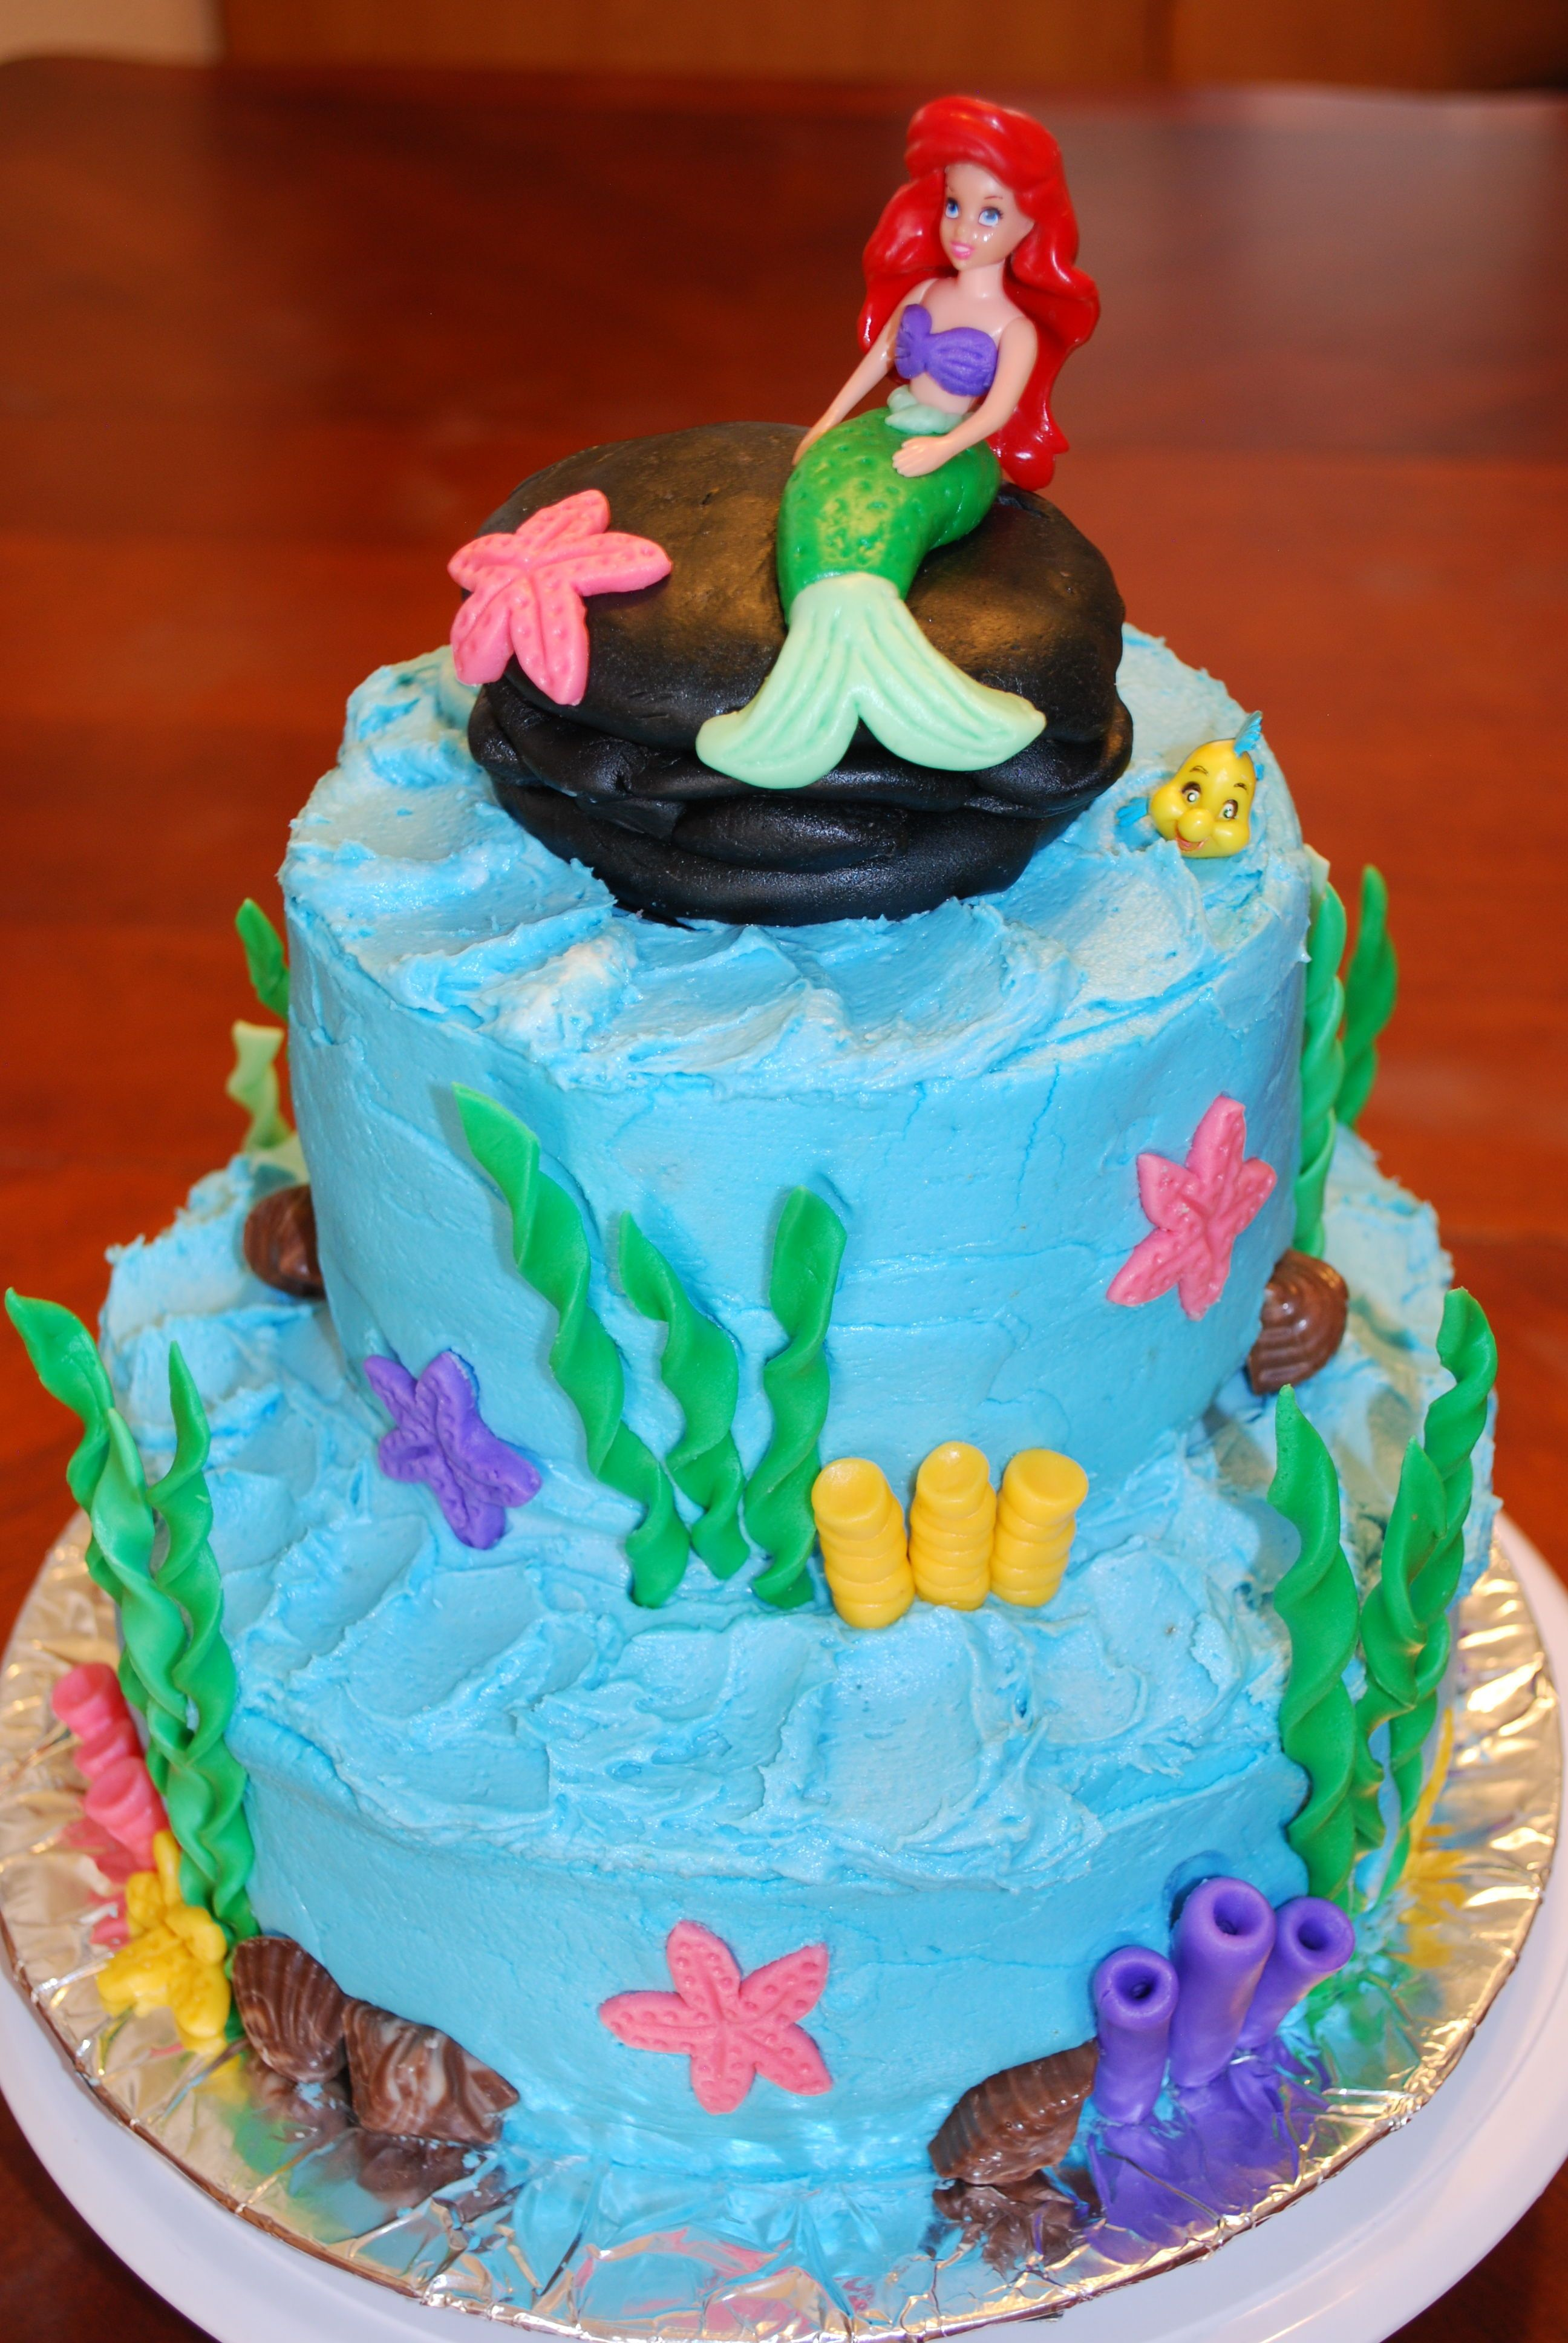 Ariel Cake Decorations I Like This For Ideas Little Mermaid Cake Buttercream With